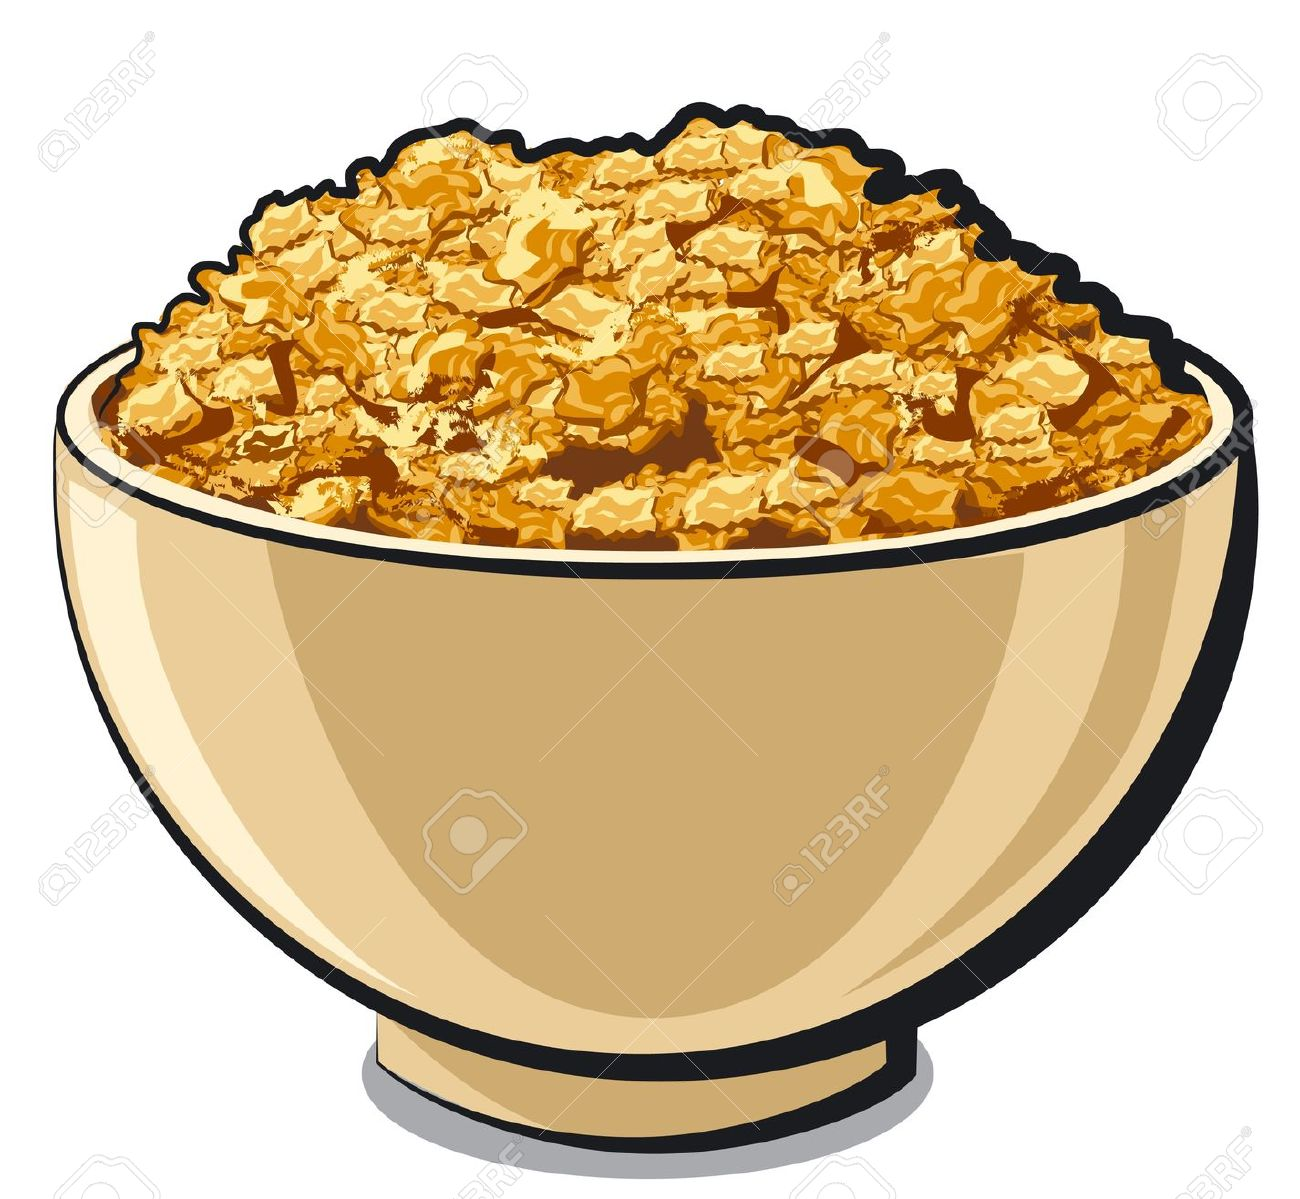 Cereal Bowl: Tasty Cornflakes .-cereal bowl: tasty cornflakes .-9